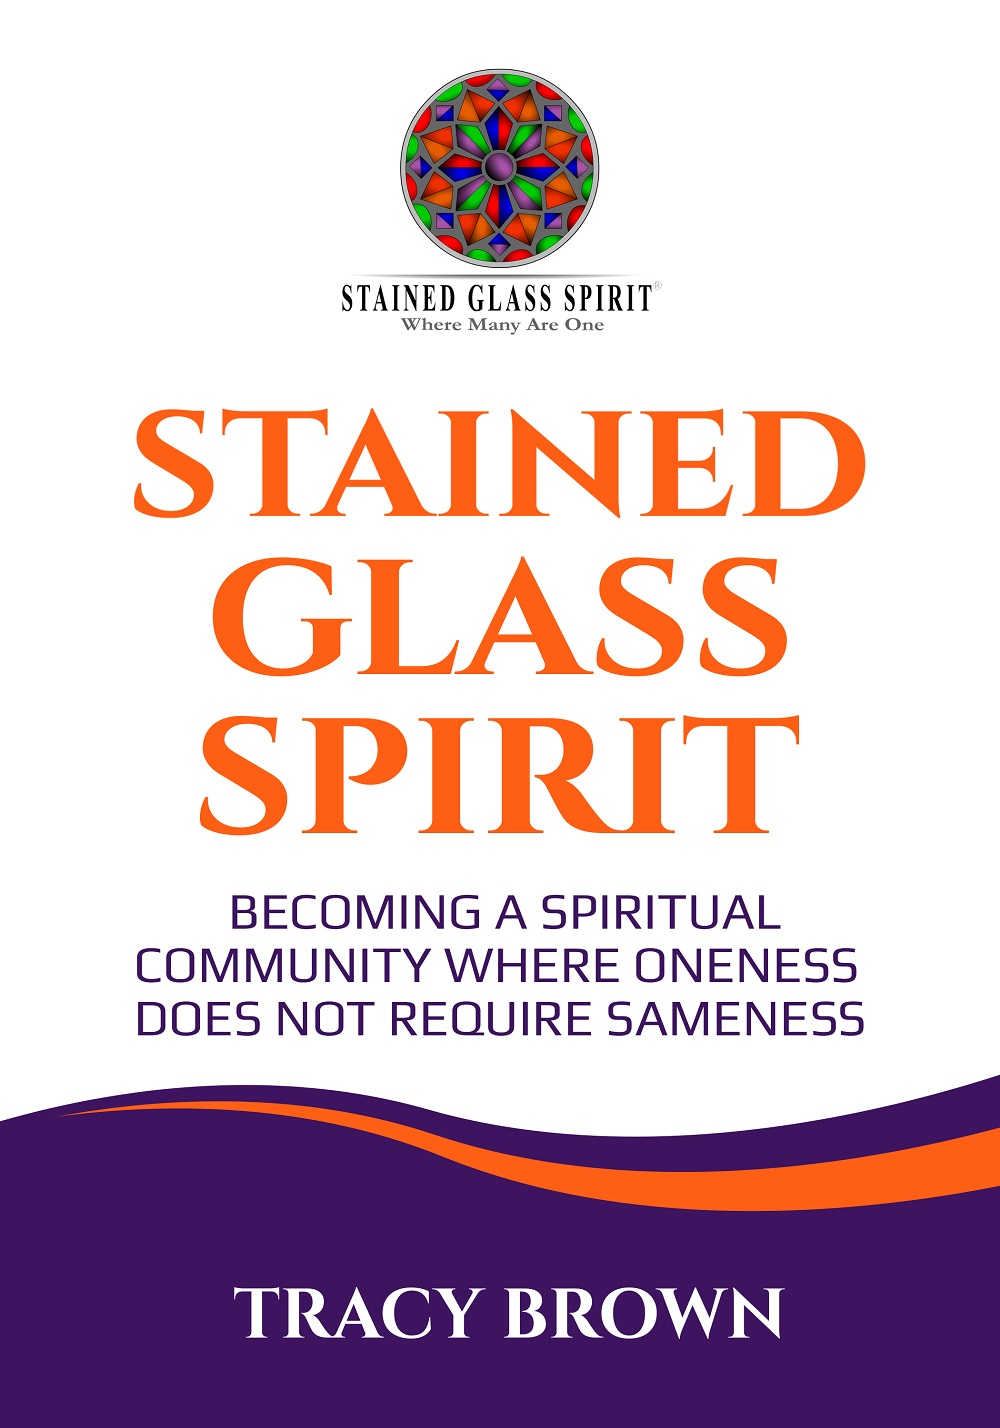 Stained Glass Spirit Book: Section Five with Sharon Ketchum and Andriette Earl